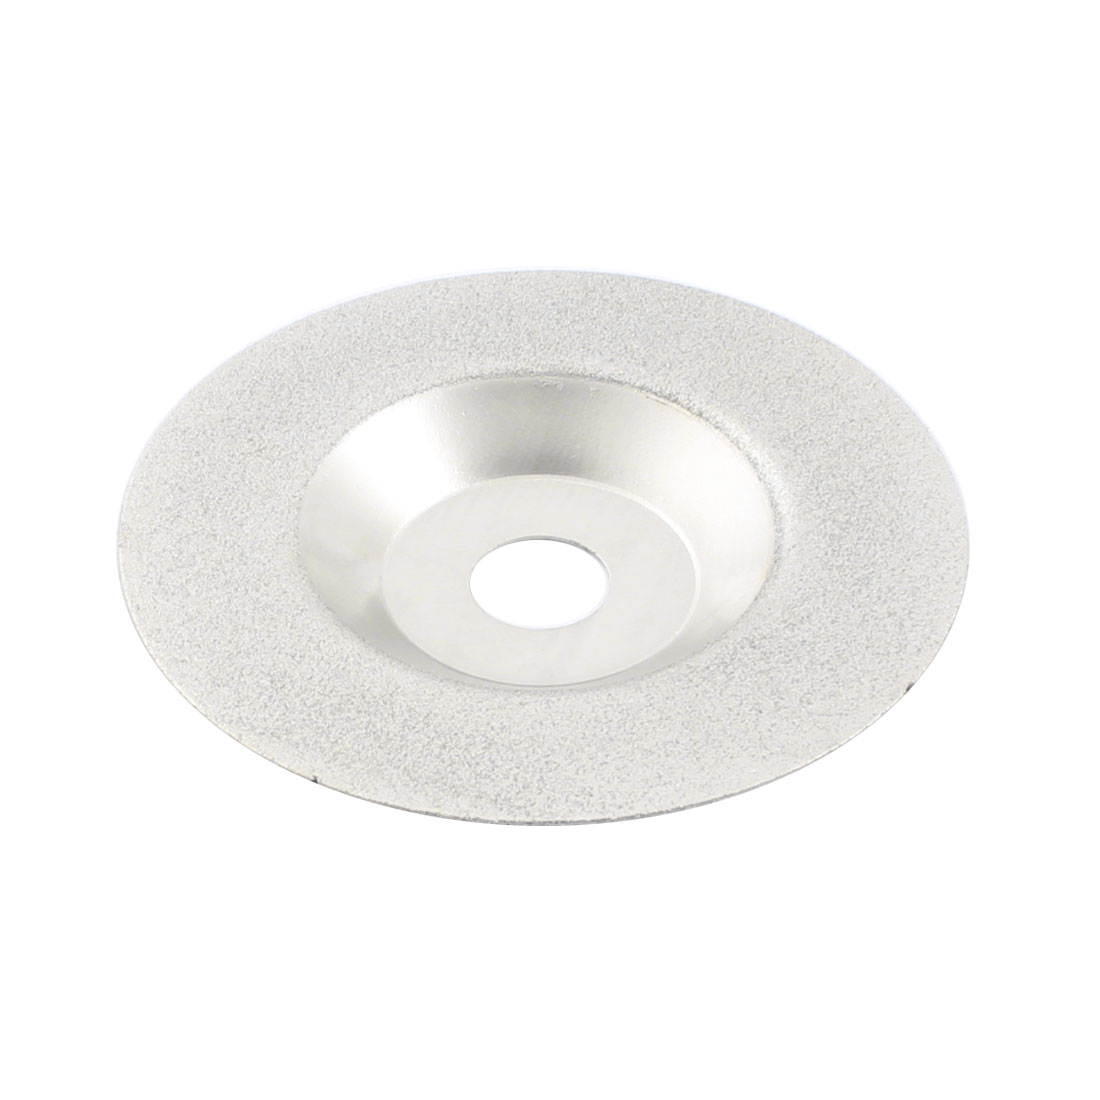 Polishing Round Shaped Glass Tile Diamond Cutting Disc 99mm Dia